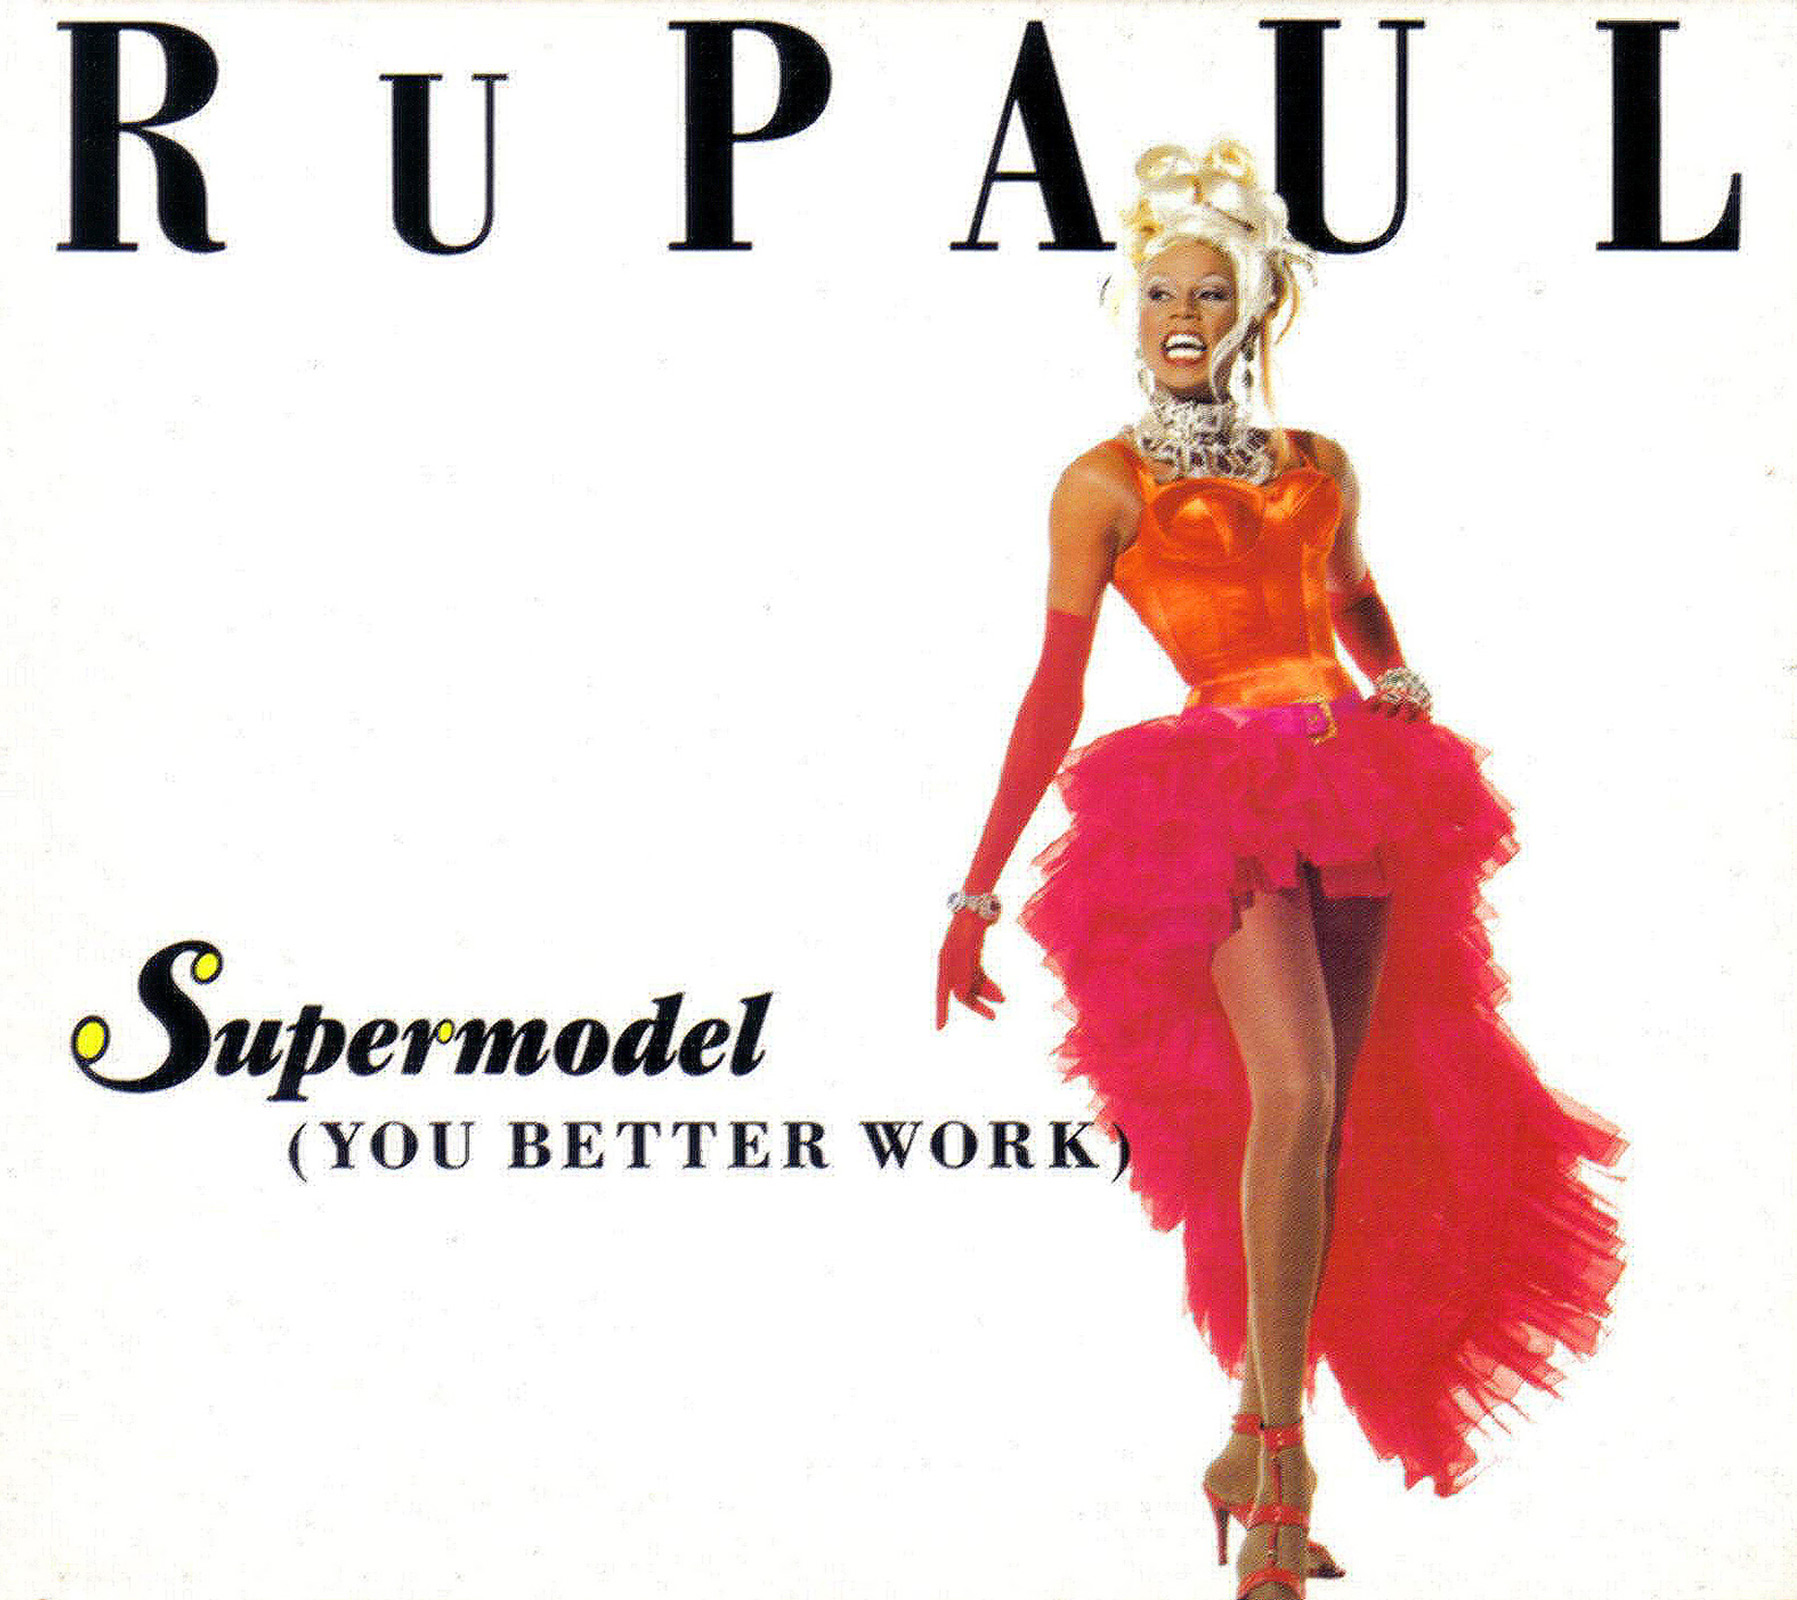 RuPaul —  Supermodel (You Better Work)